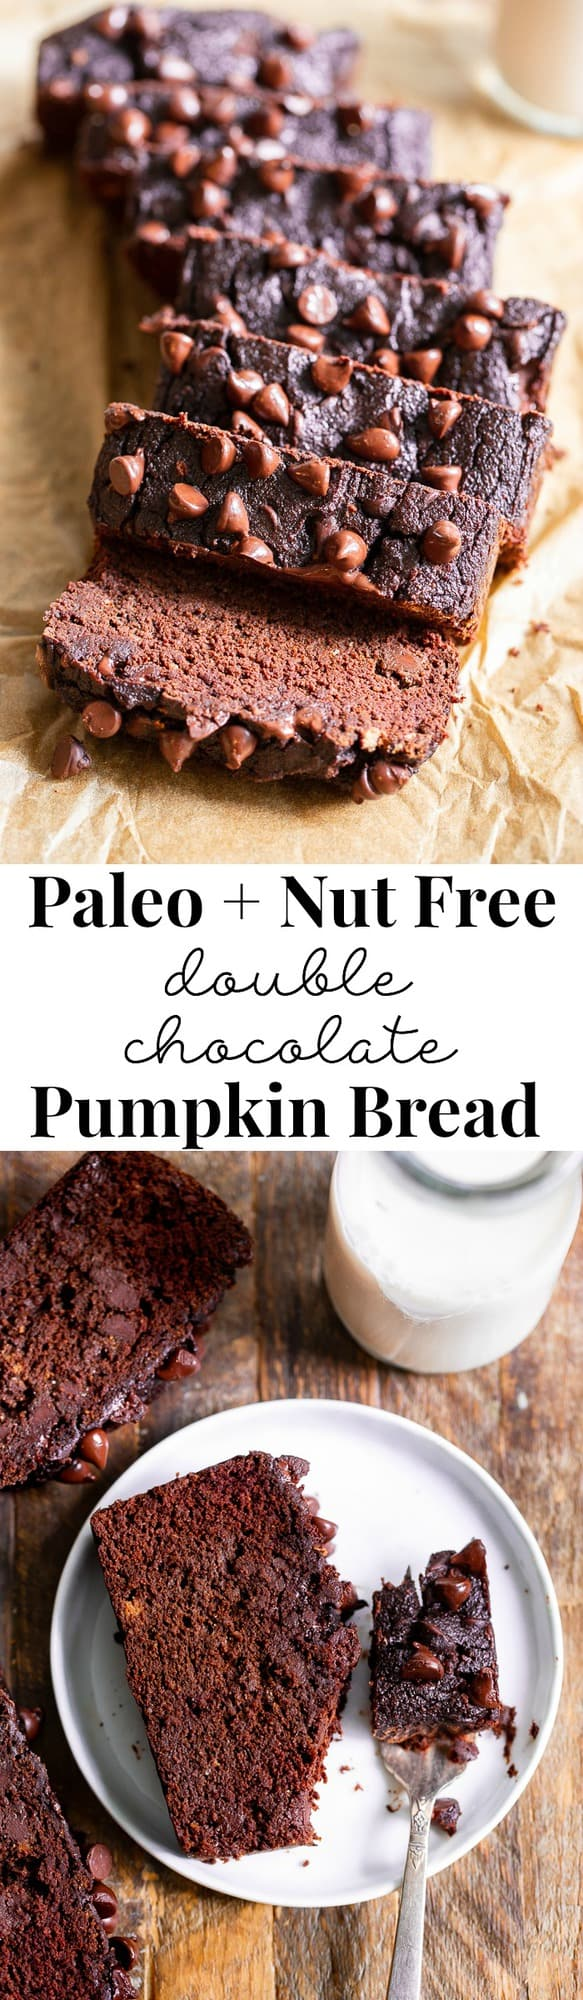 This paleo double chocolate chip pumpkin bread is moist, cake-like, and packs a big flavor punch with lots of dark chocolate flavor AND warm pumpkin pie spices. It's gluten free, grain free, dairy free, and nut free.